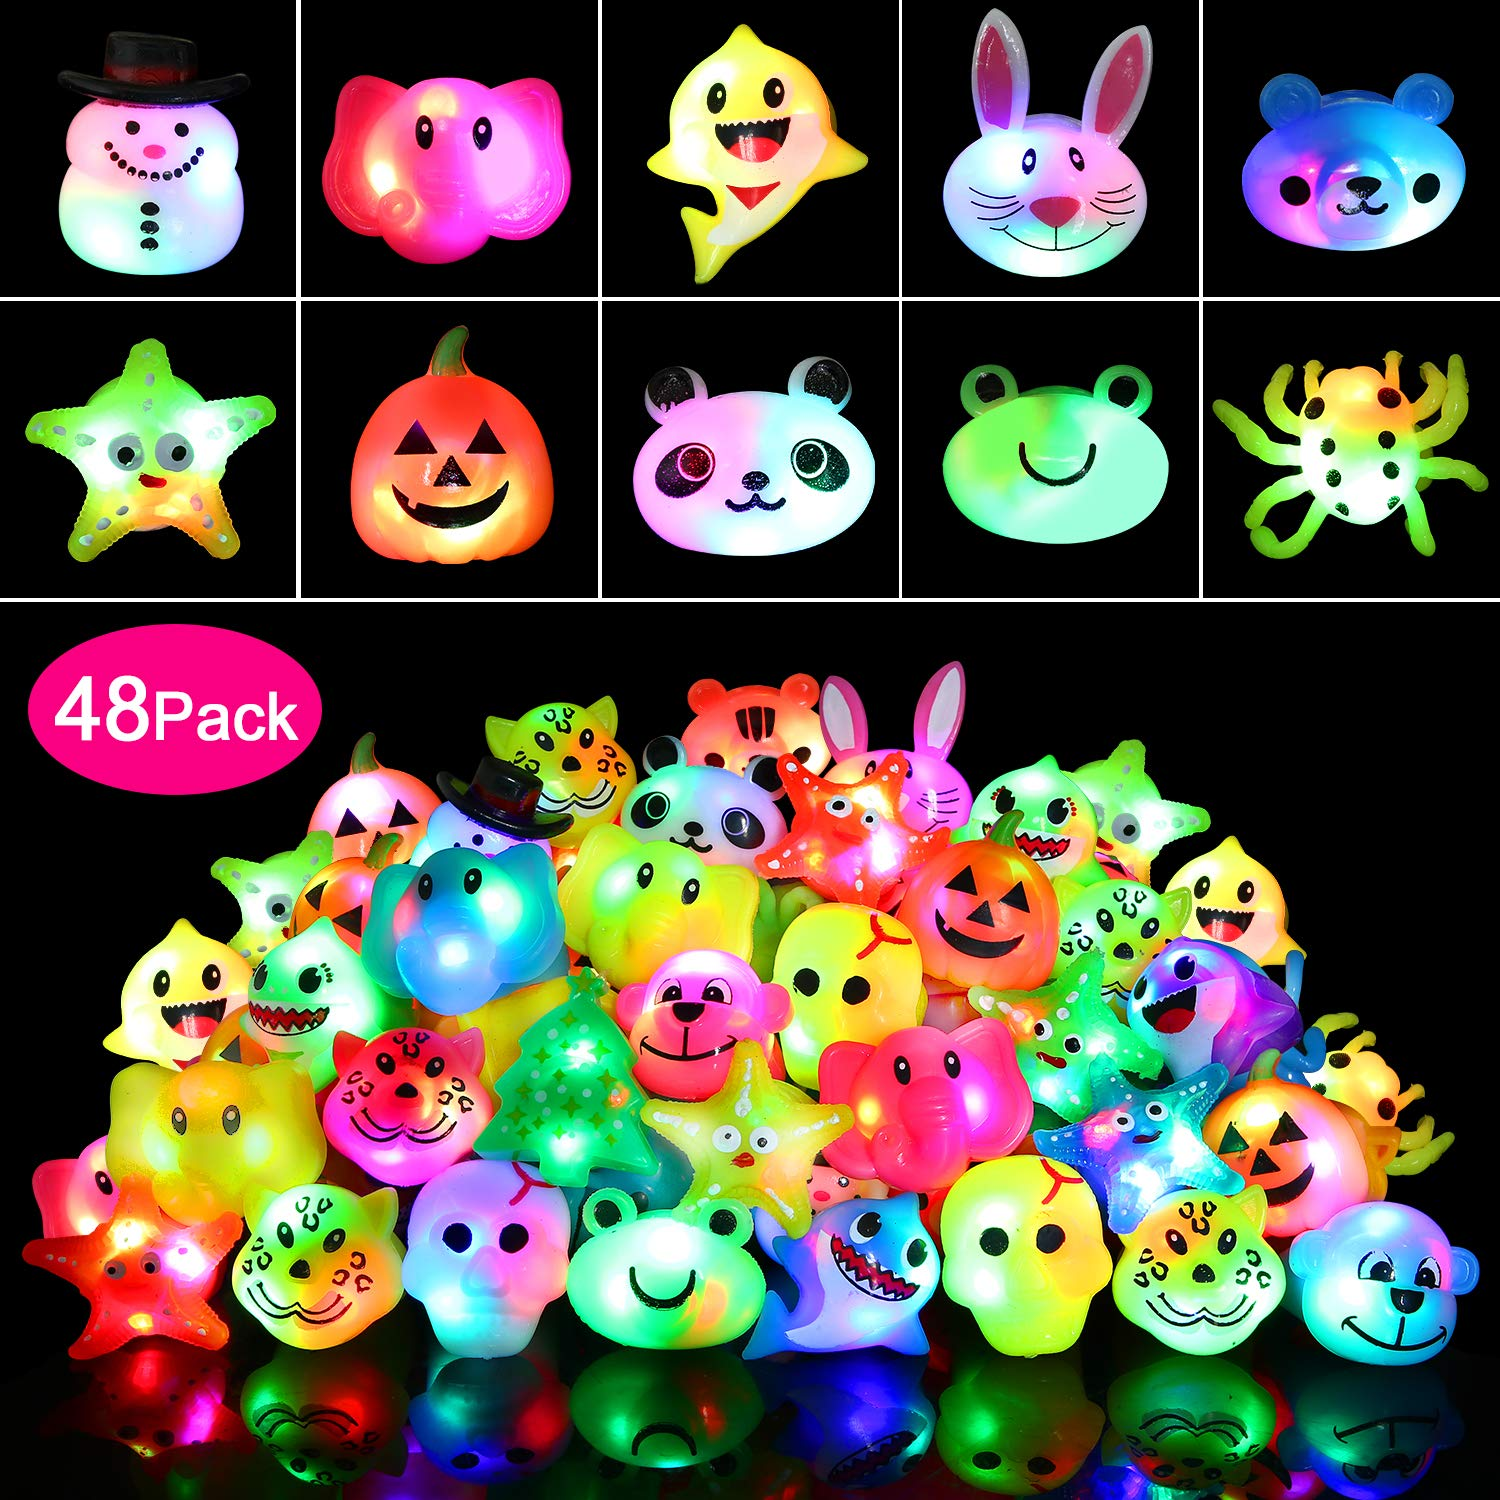 wellvo 48 Pack Light up Rings Party Favors for Kids Flashing Led Toys Glow in The Dark Party Supplies Goody Bag Stuffers by wellvo